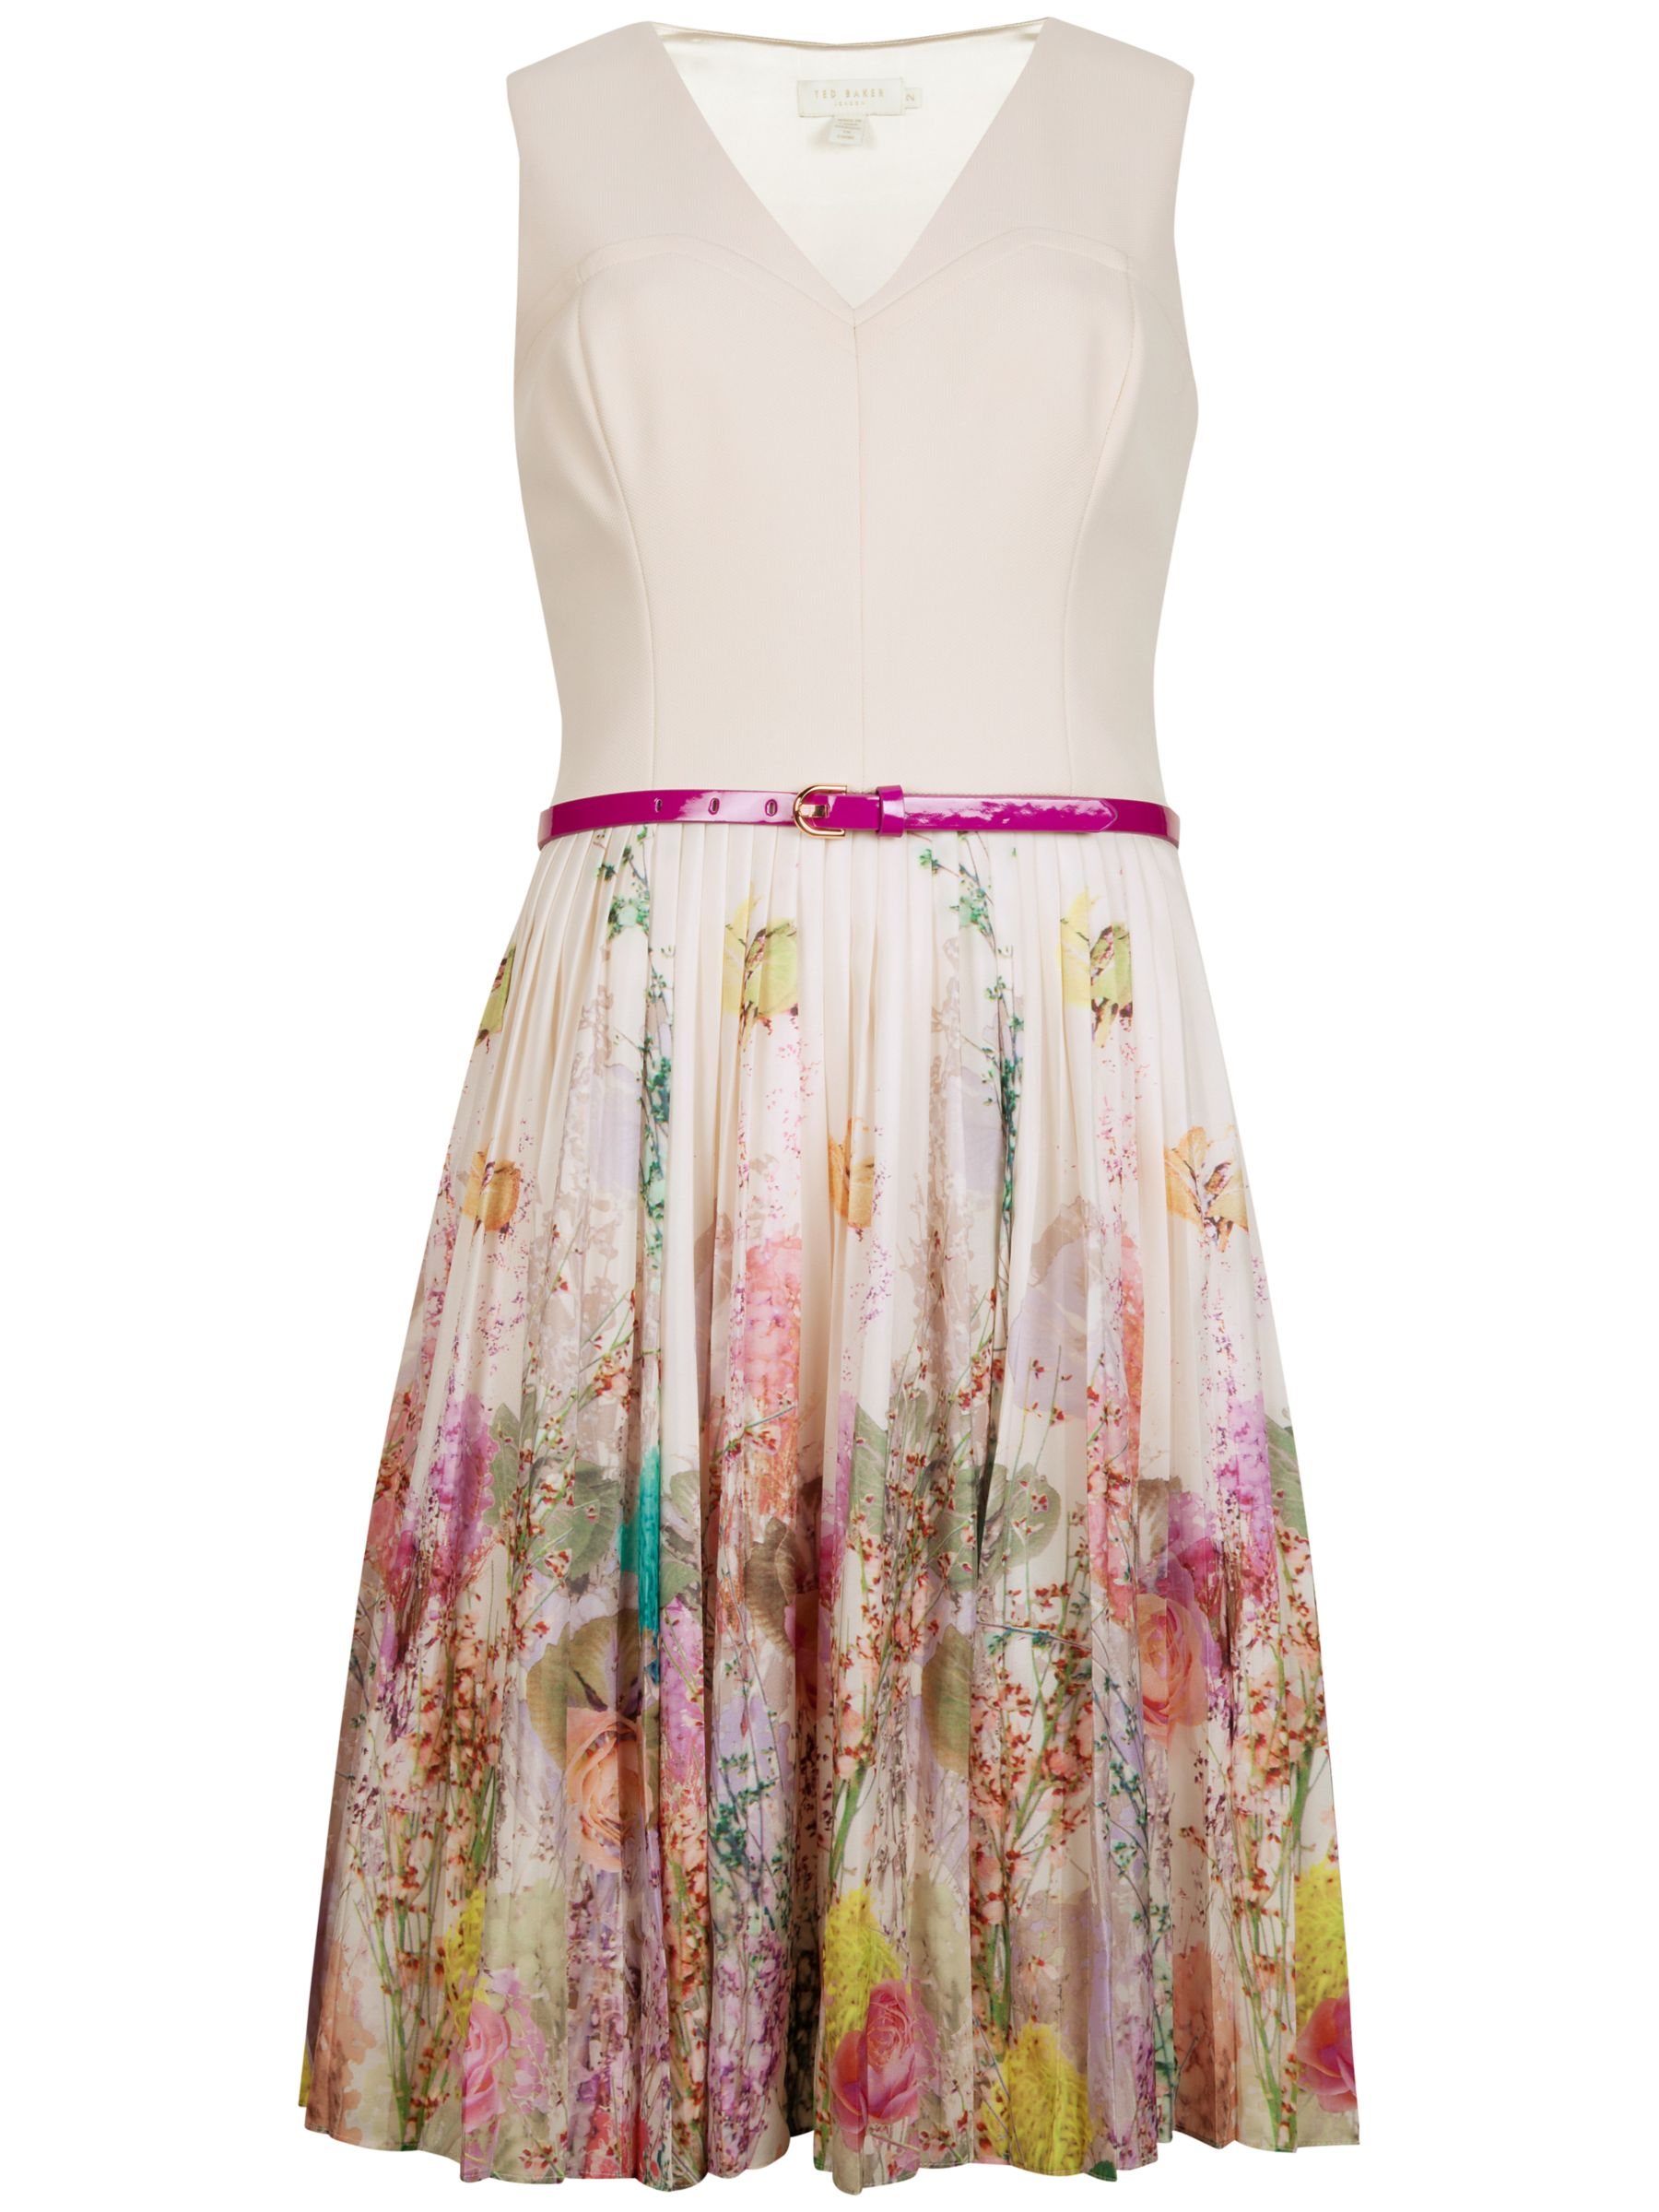 ted baker wispy mead print dress light pink, ted, baker, wispy, mead, print, dress, light, pink, ted baker, 1|2|3|4|5|0, women, womens dresses, fashion magazine, womenswear, men, brands l-z, 1489398